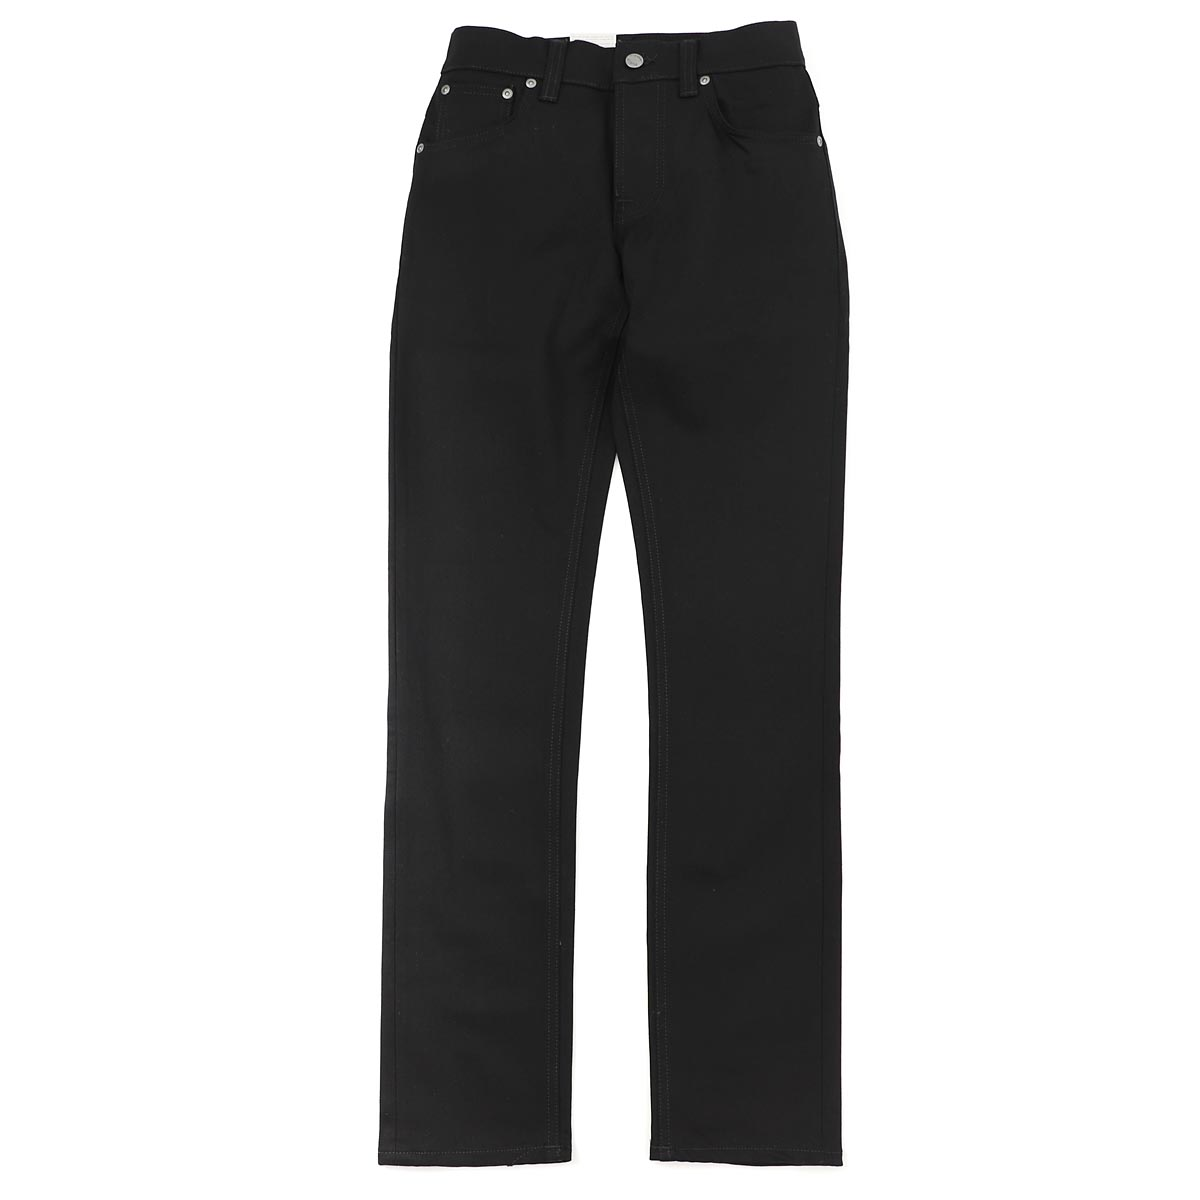 Nudie jeans nudie jeans co button fried food jeans GRIM TIM SLIM REGULAR FIT DRY COLD BLACK black system grim tim 112302 men